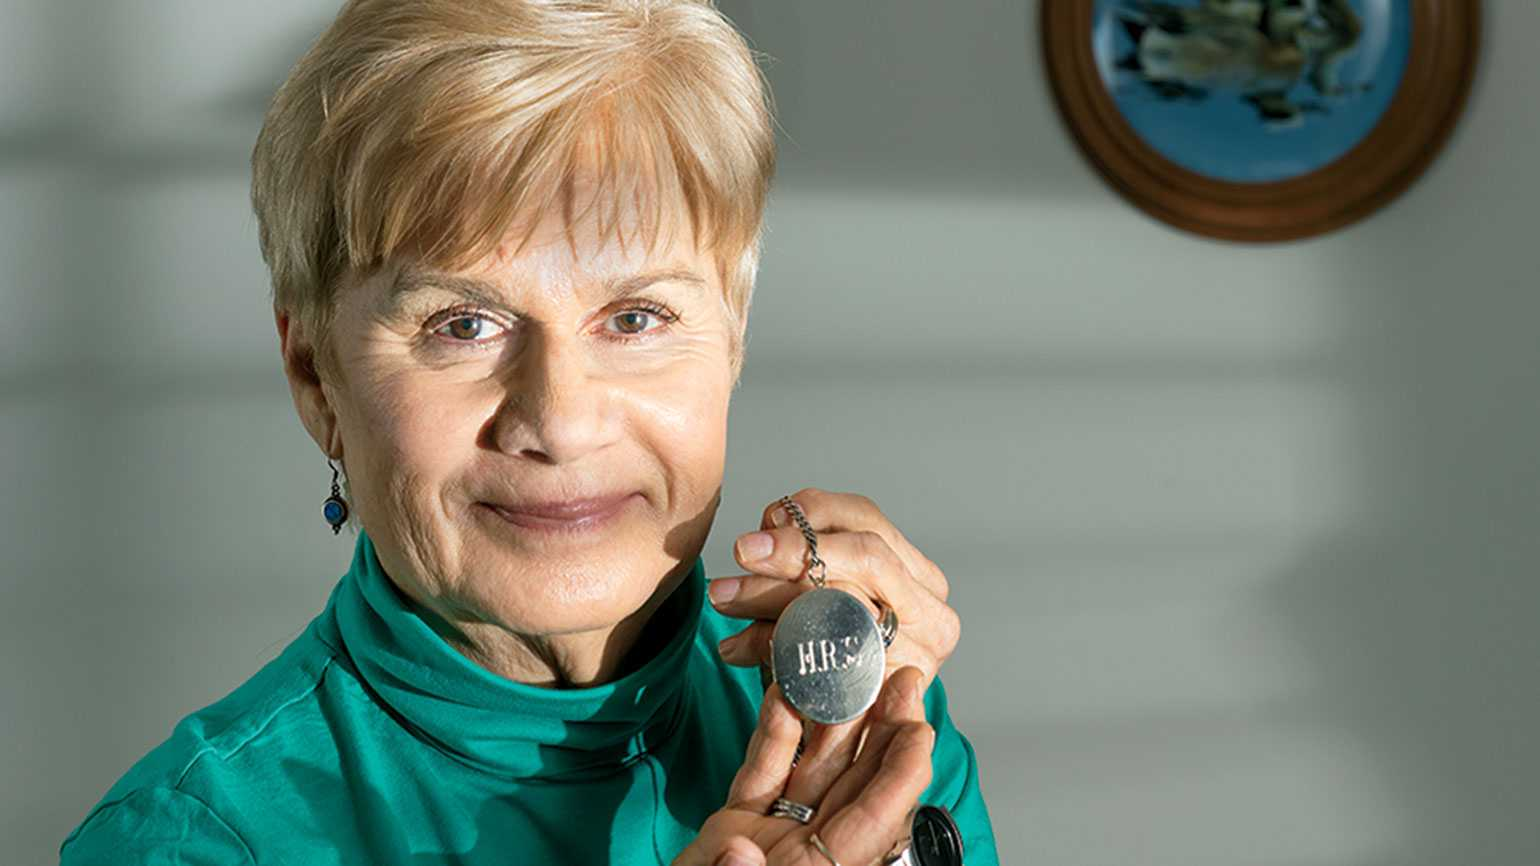 The Miraculous Return of Her Mother's Locket